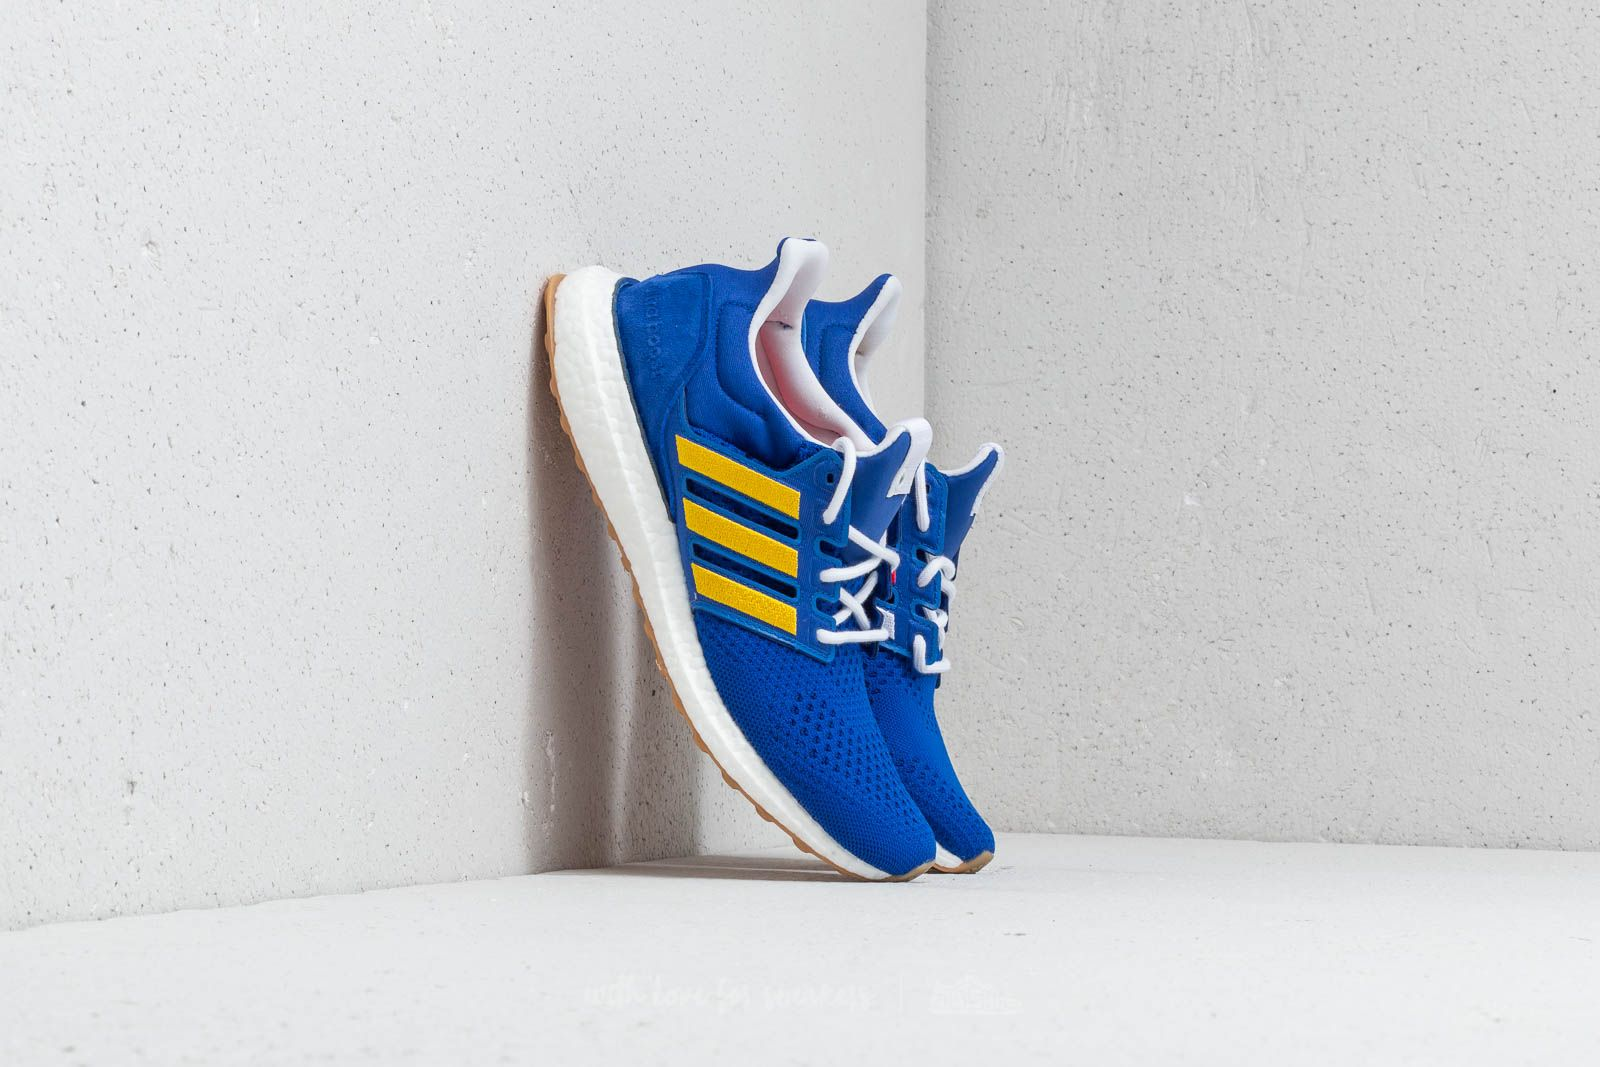 52756c6d5 adidas Consortium x Engineered Garments Ultra Boost Blue  Red  Wonder Glow  at a great